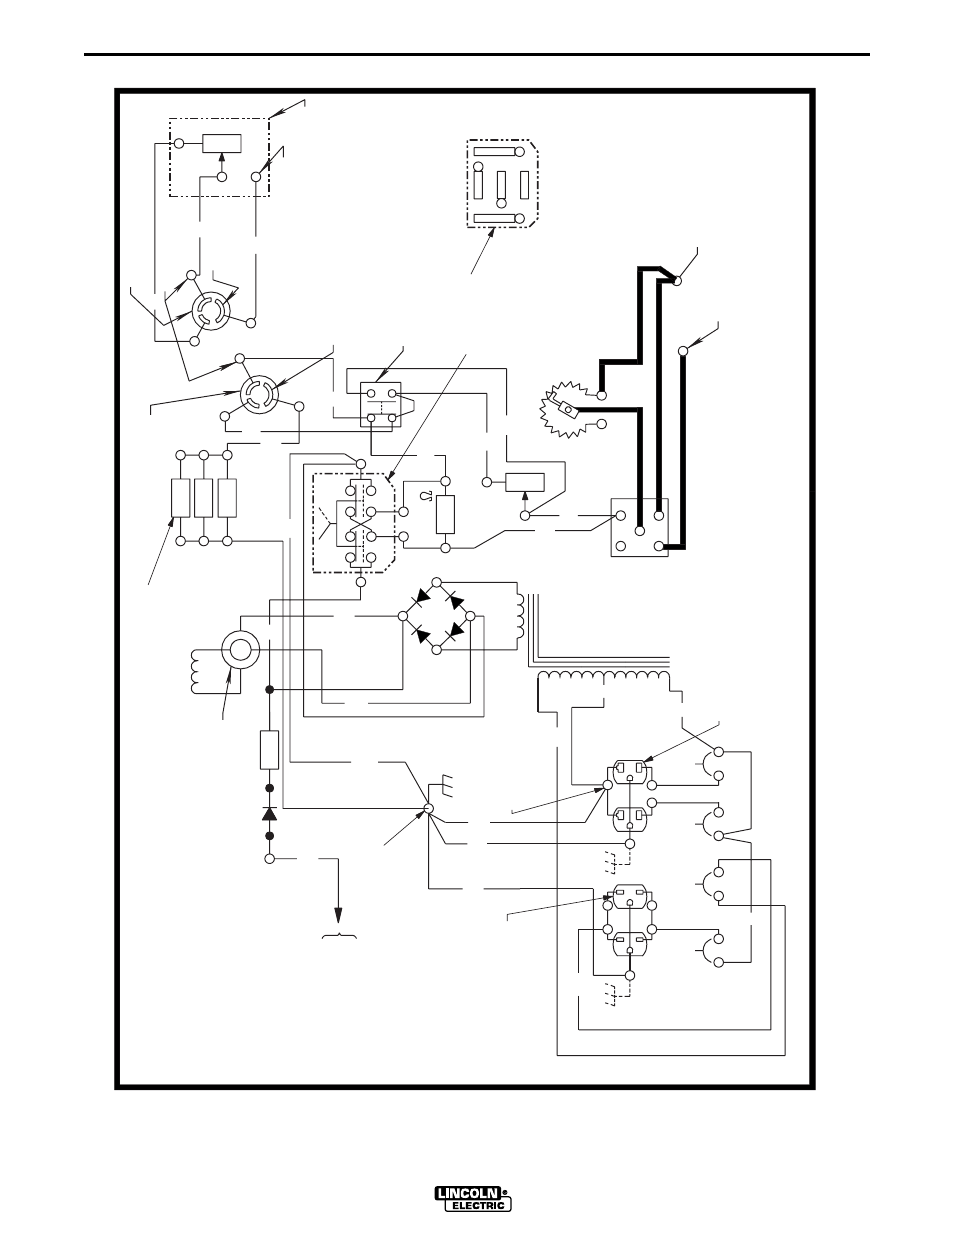 Wiring diagrams sae400 weldn air control wiring diagram sae 400 wiring diagrams sae400 weldn air control wiring diagram sae 400 weldn air lincoln electric im581 sae400 user manual page 28 34 asfbconference2016